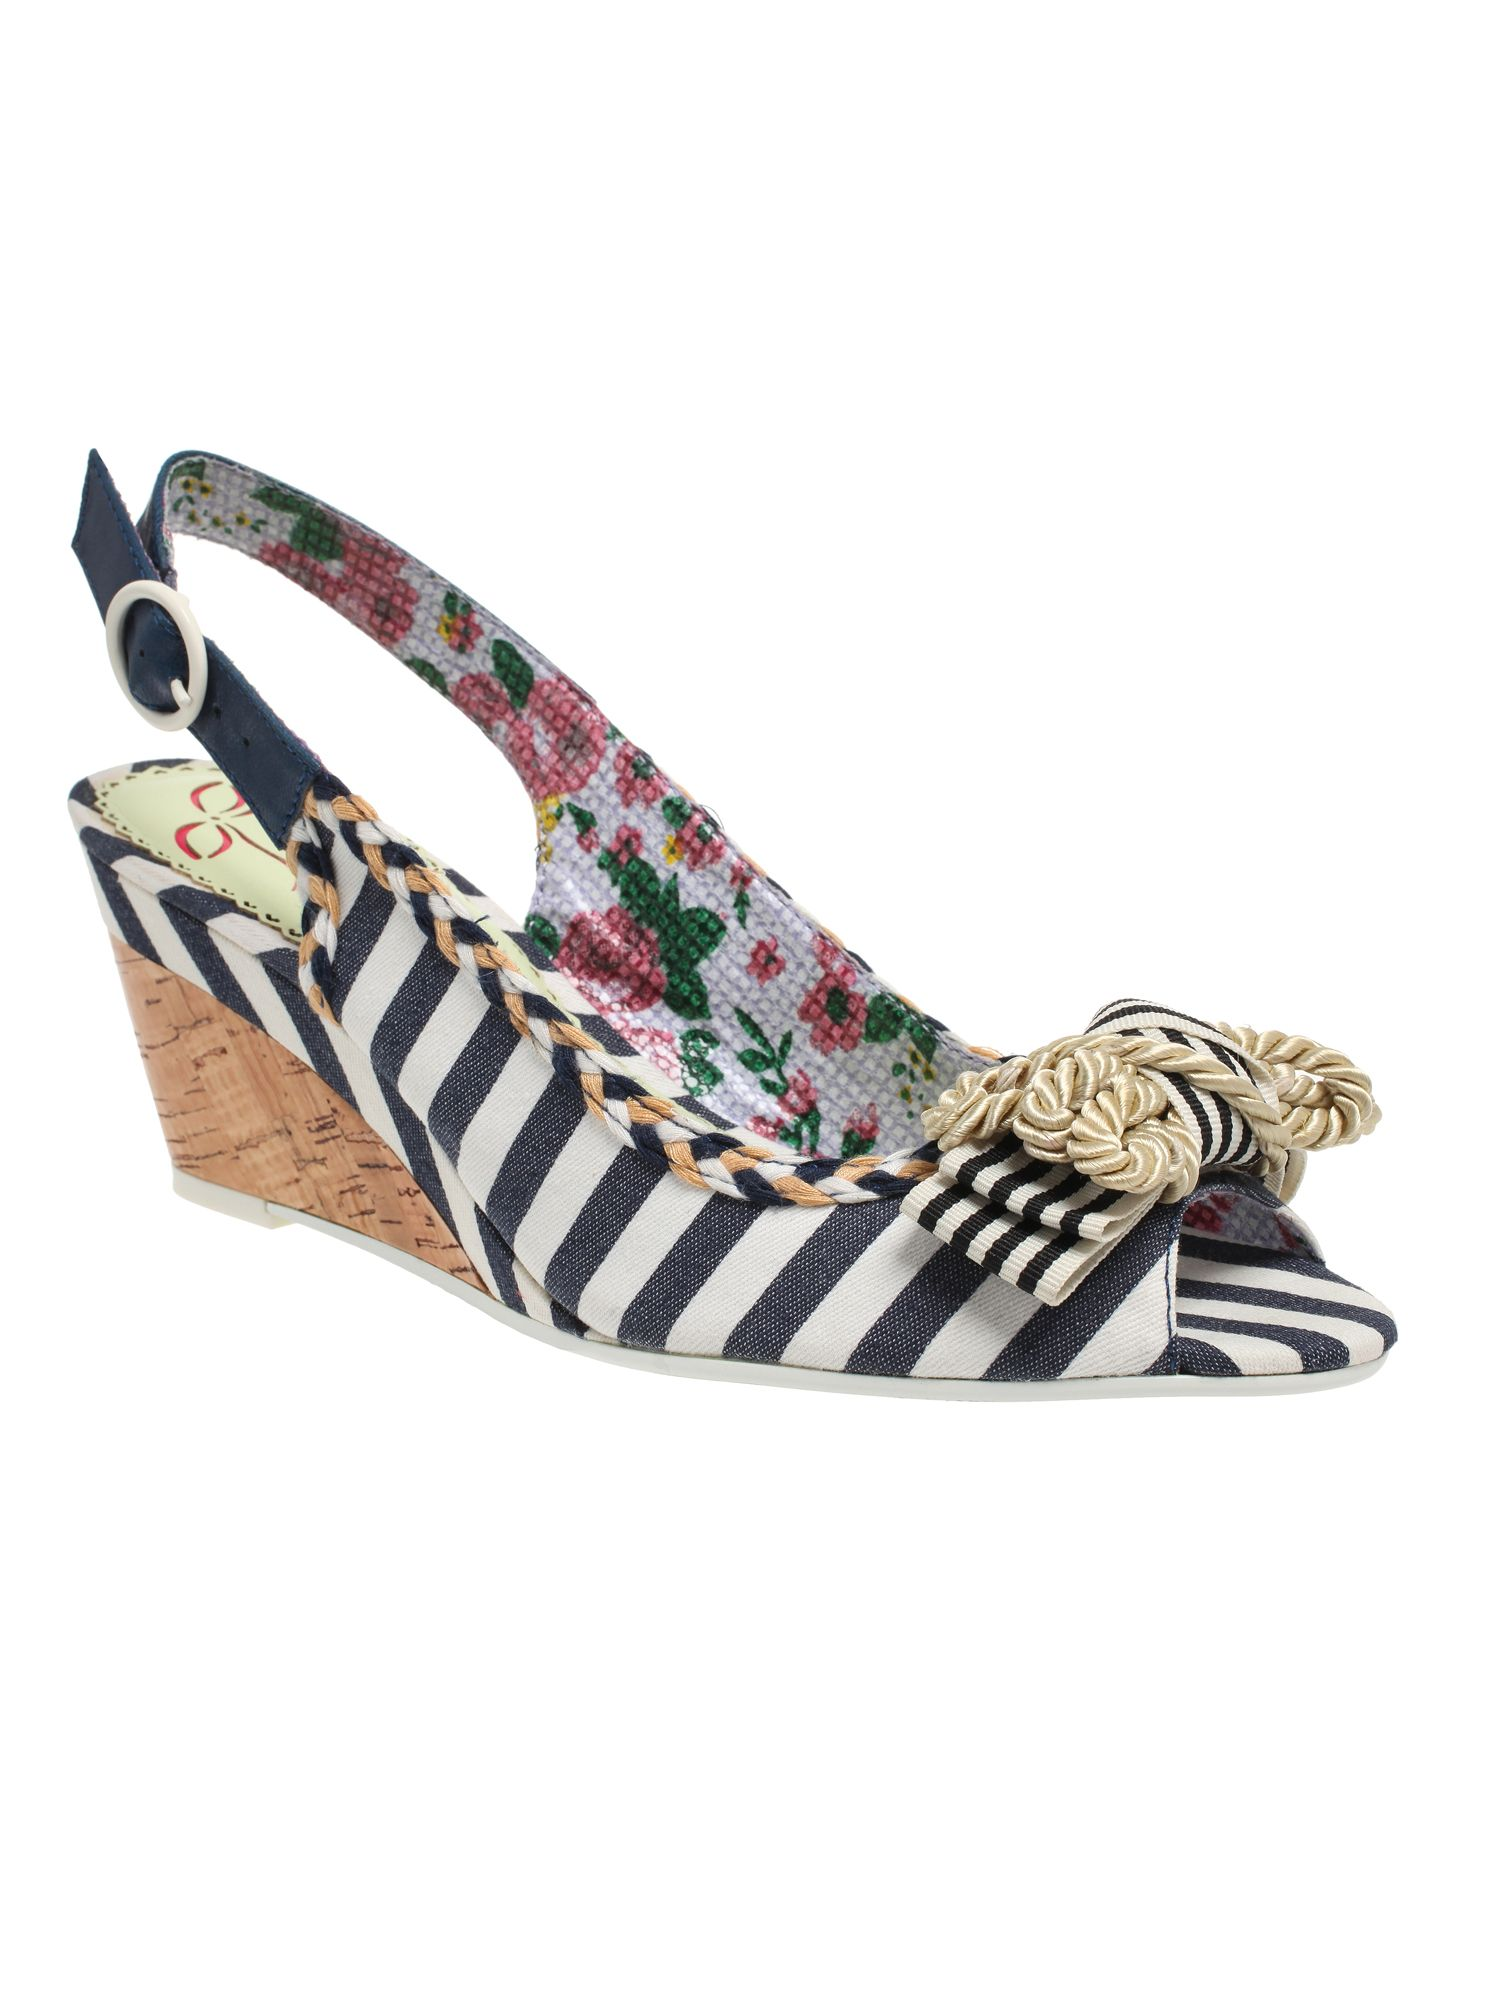 Mover and shaker wedge slingback sandals